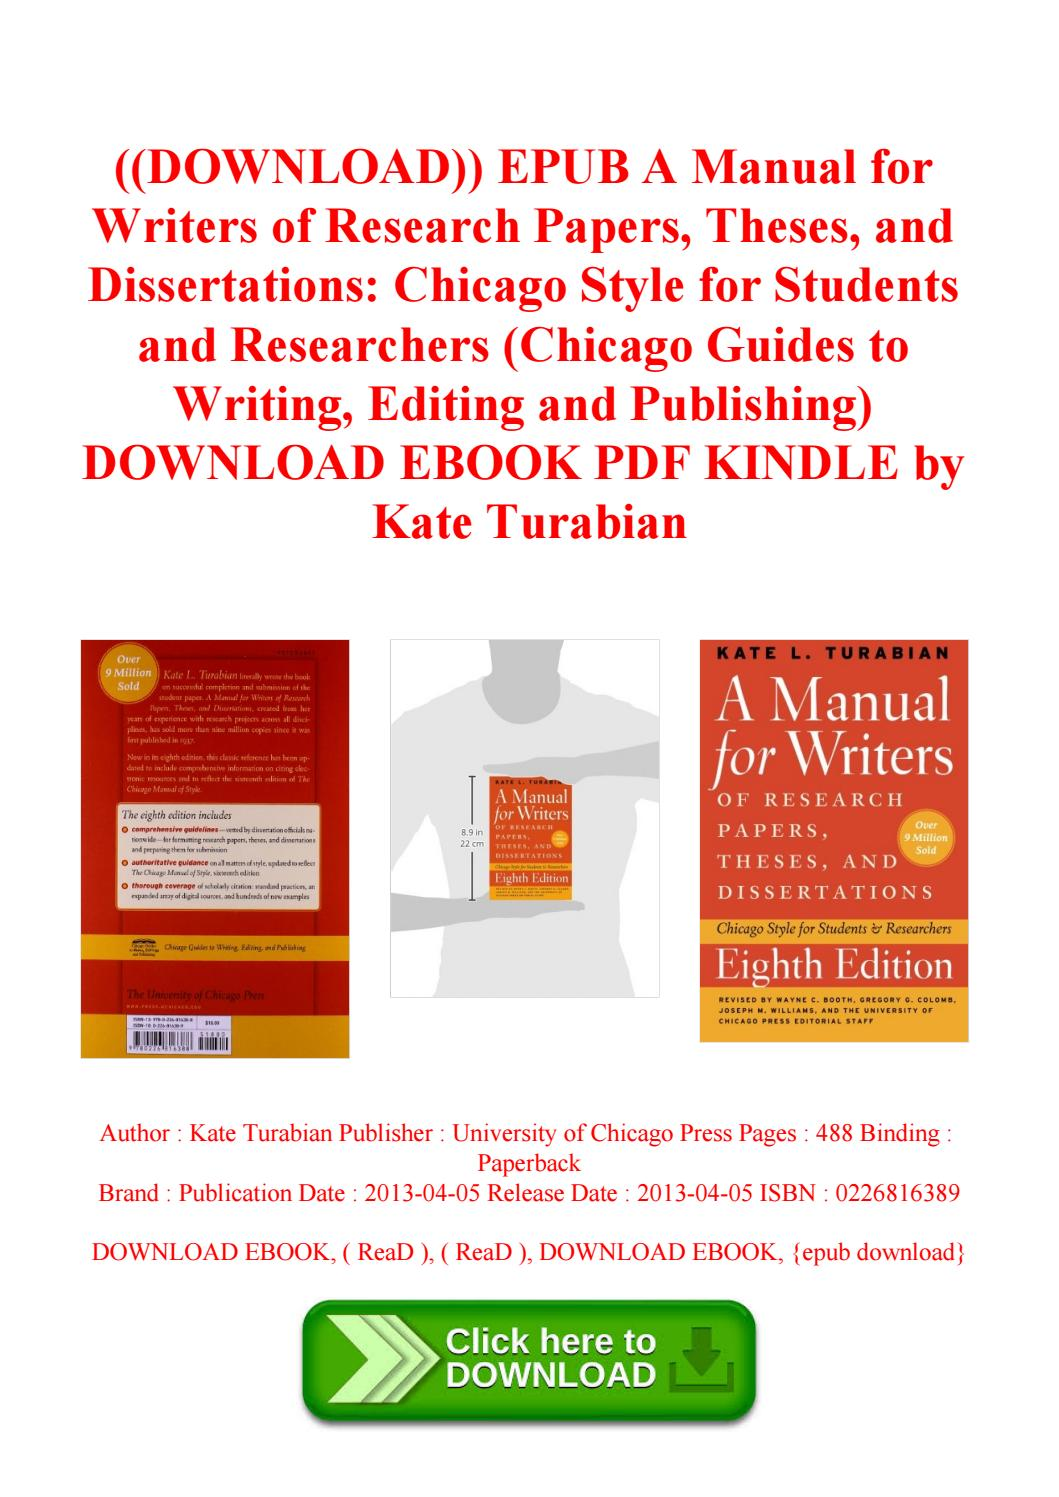 006 Page 1 Research Paper Manual For Writers Of Papers Theses And Sensational A Dissertations Eighth Edition Pdf 9th 8th Full